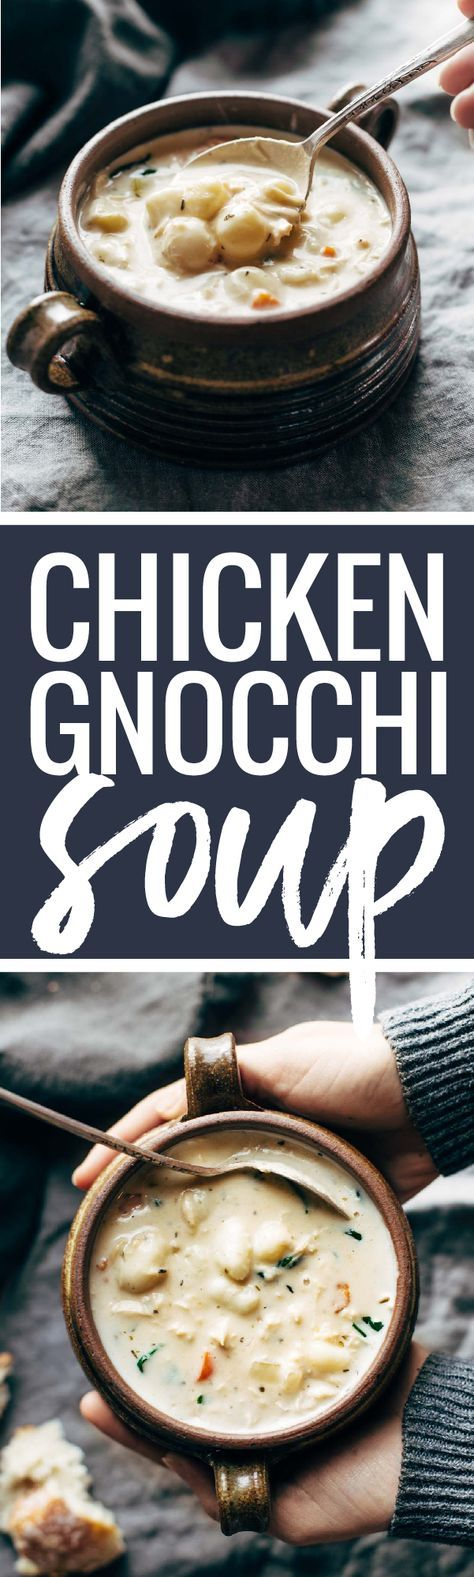 Crockpot Chicken Gnocchi Soup - easy, comforting, lots of vegetables, no heavy cream. A total crowd-pleaser! | http://pinchofyum.com